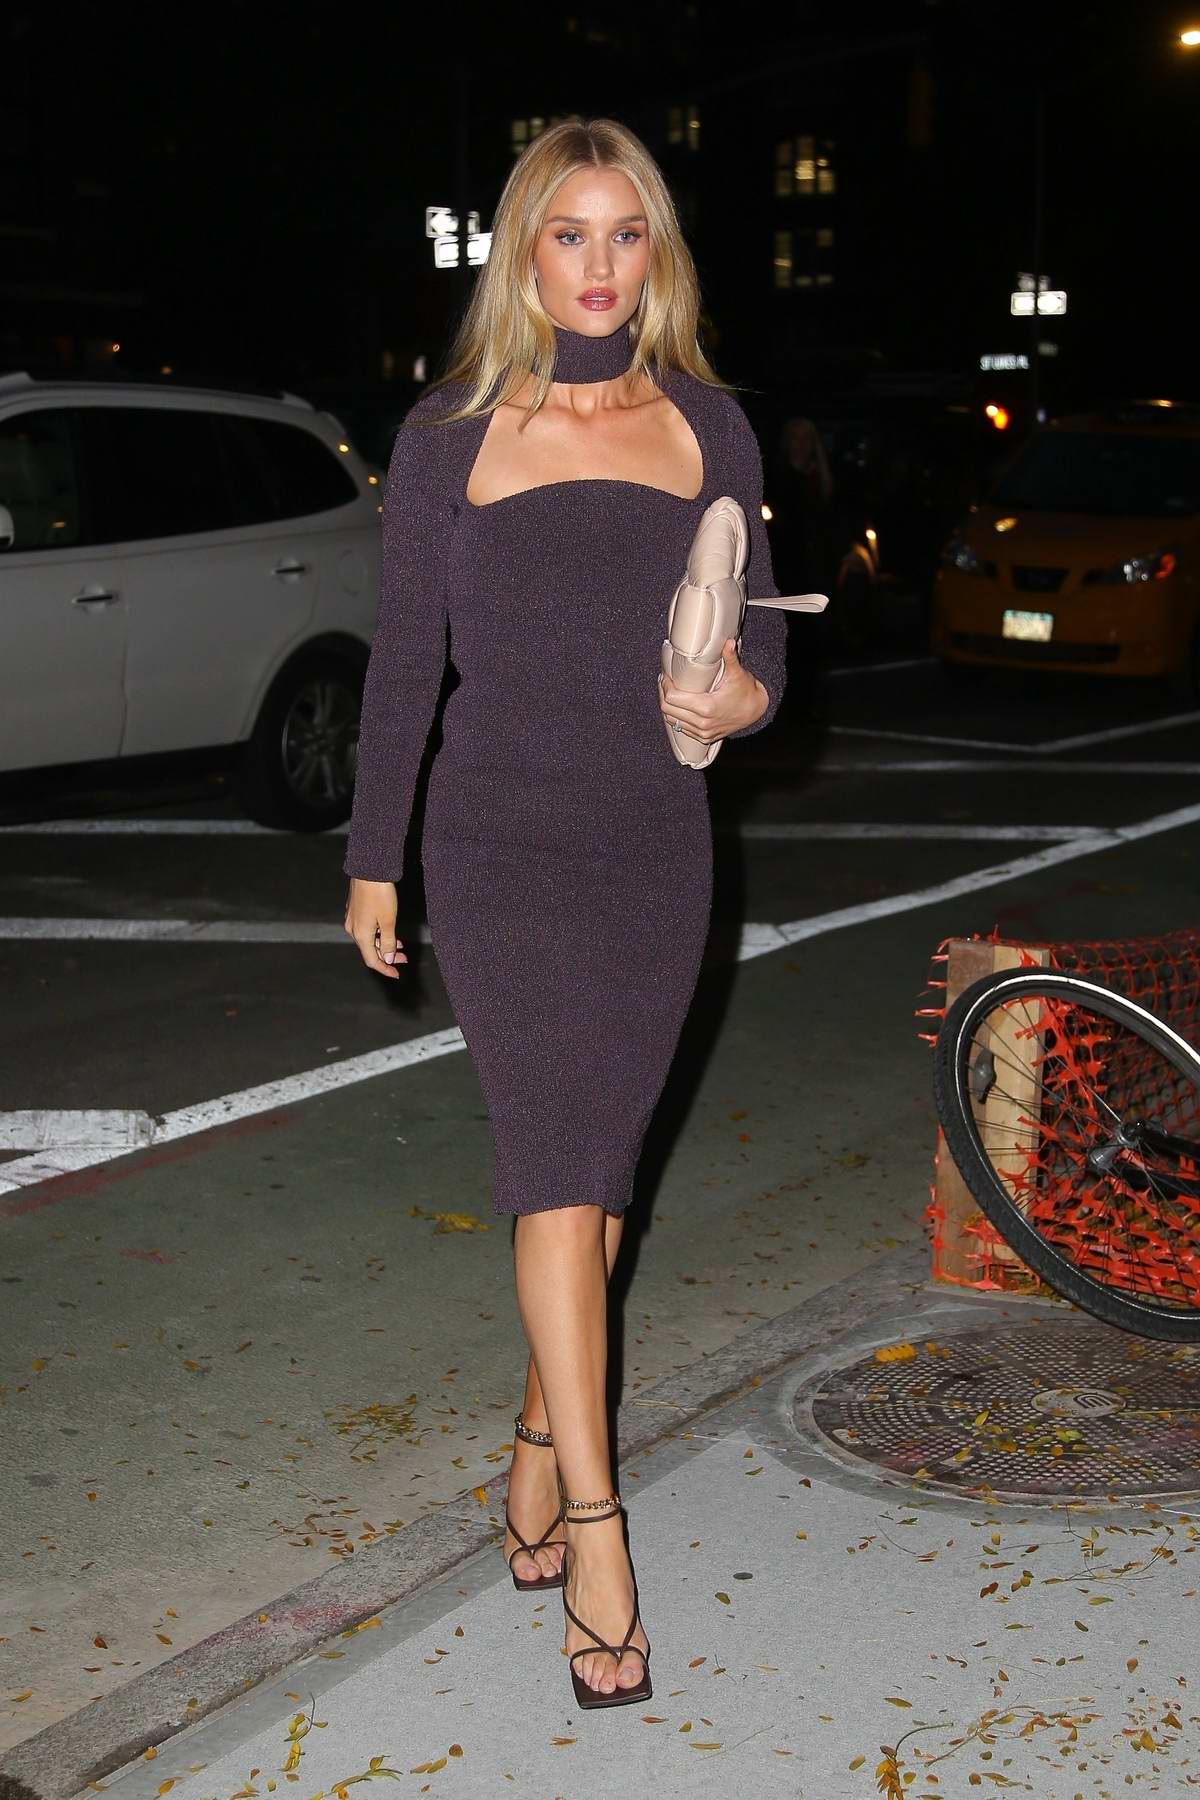 Rosie Huntington-Whiteley looks stunning in a purple dress as she leaves her hotel in New York City